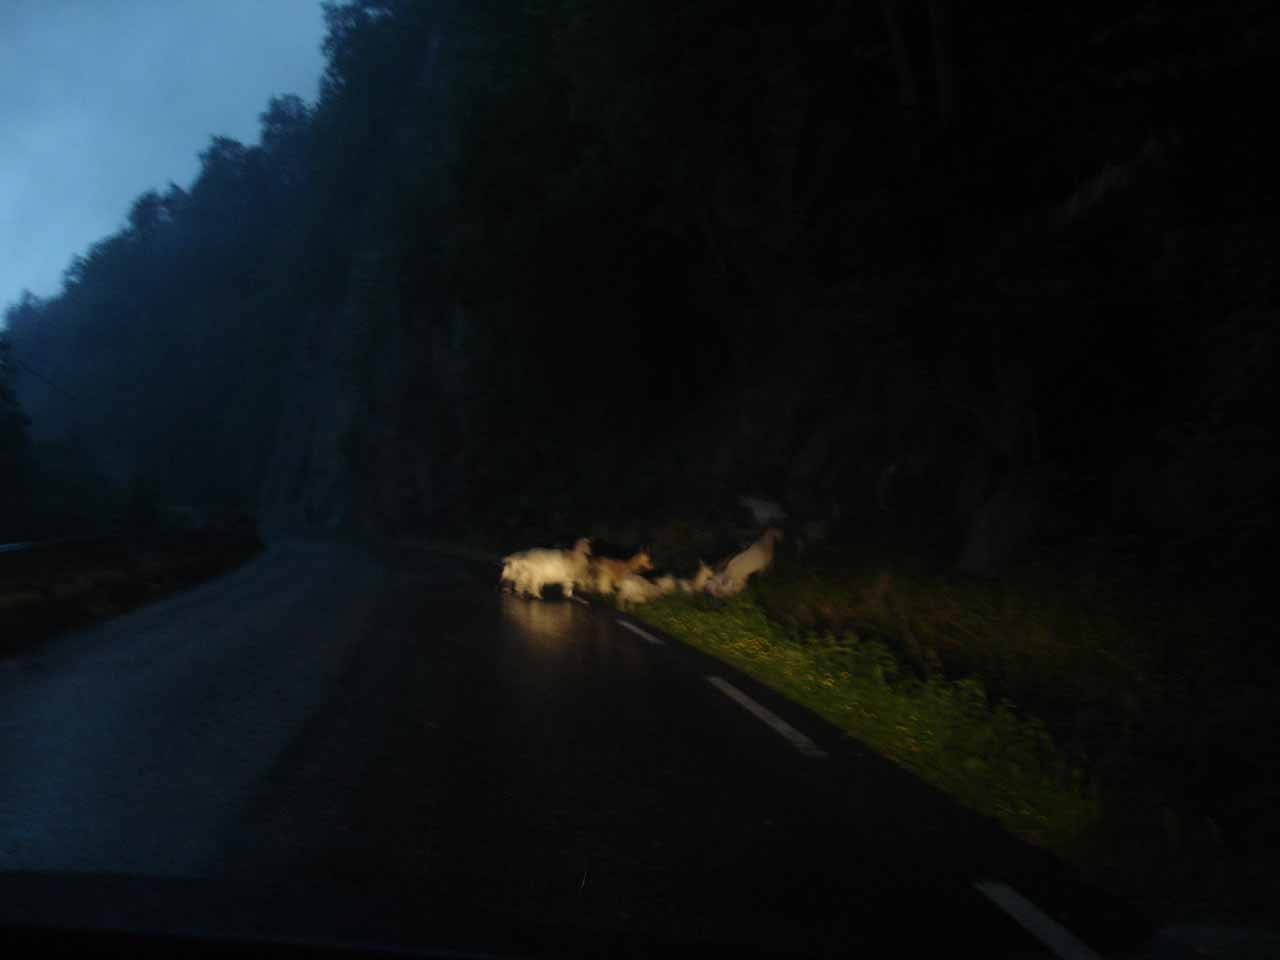 We encountered these goats while making the long drive from Preikestolen (the pulpit) to the town of Sand